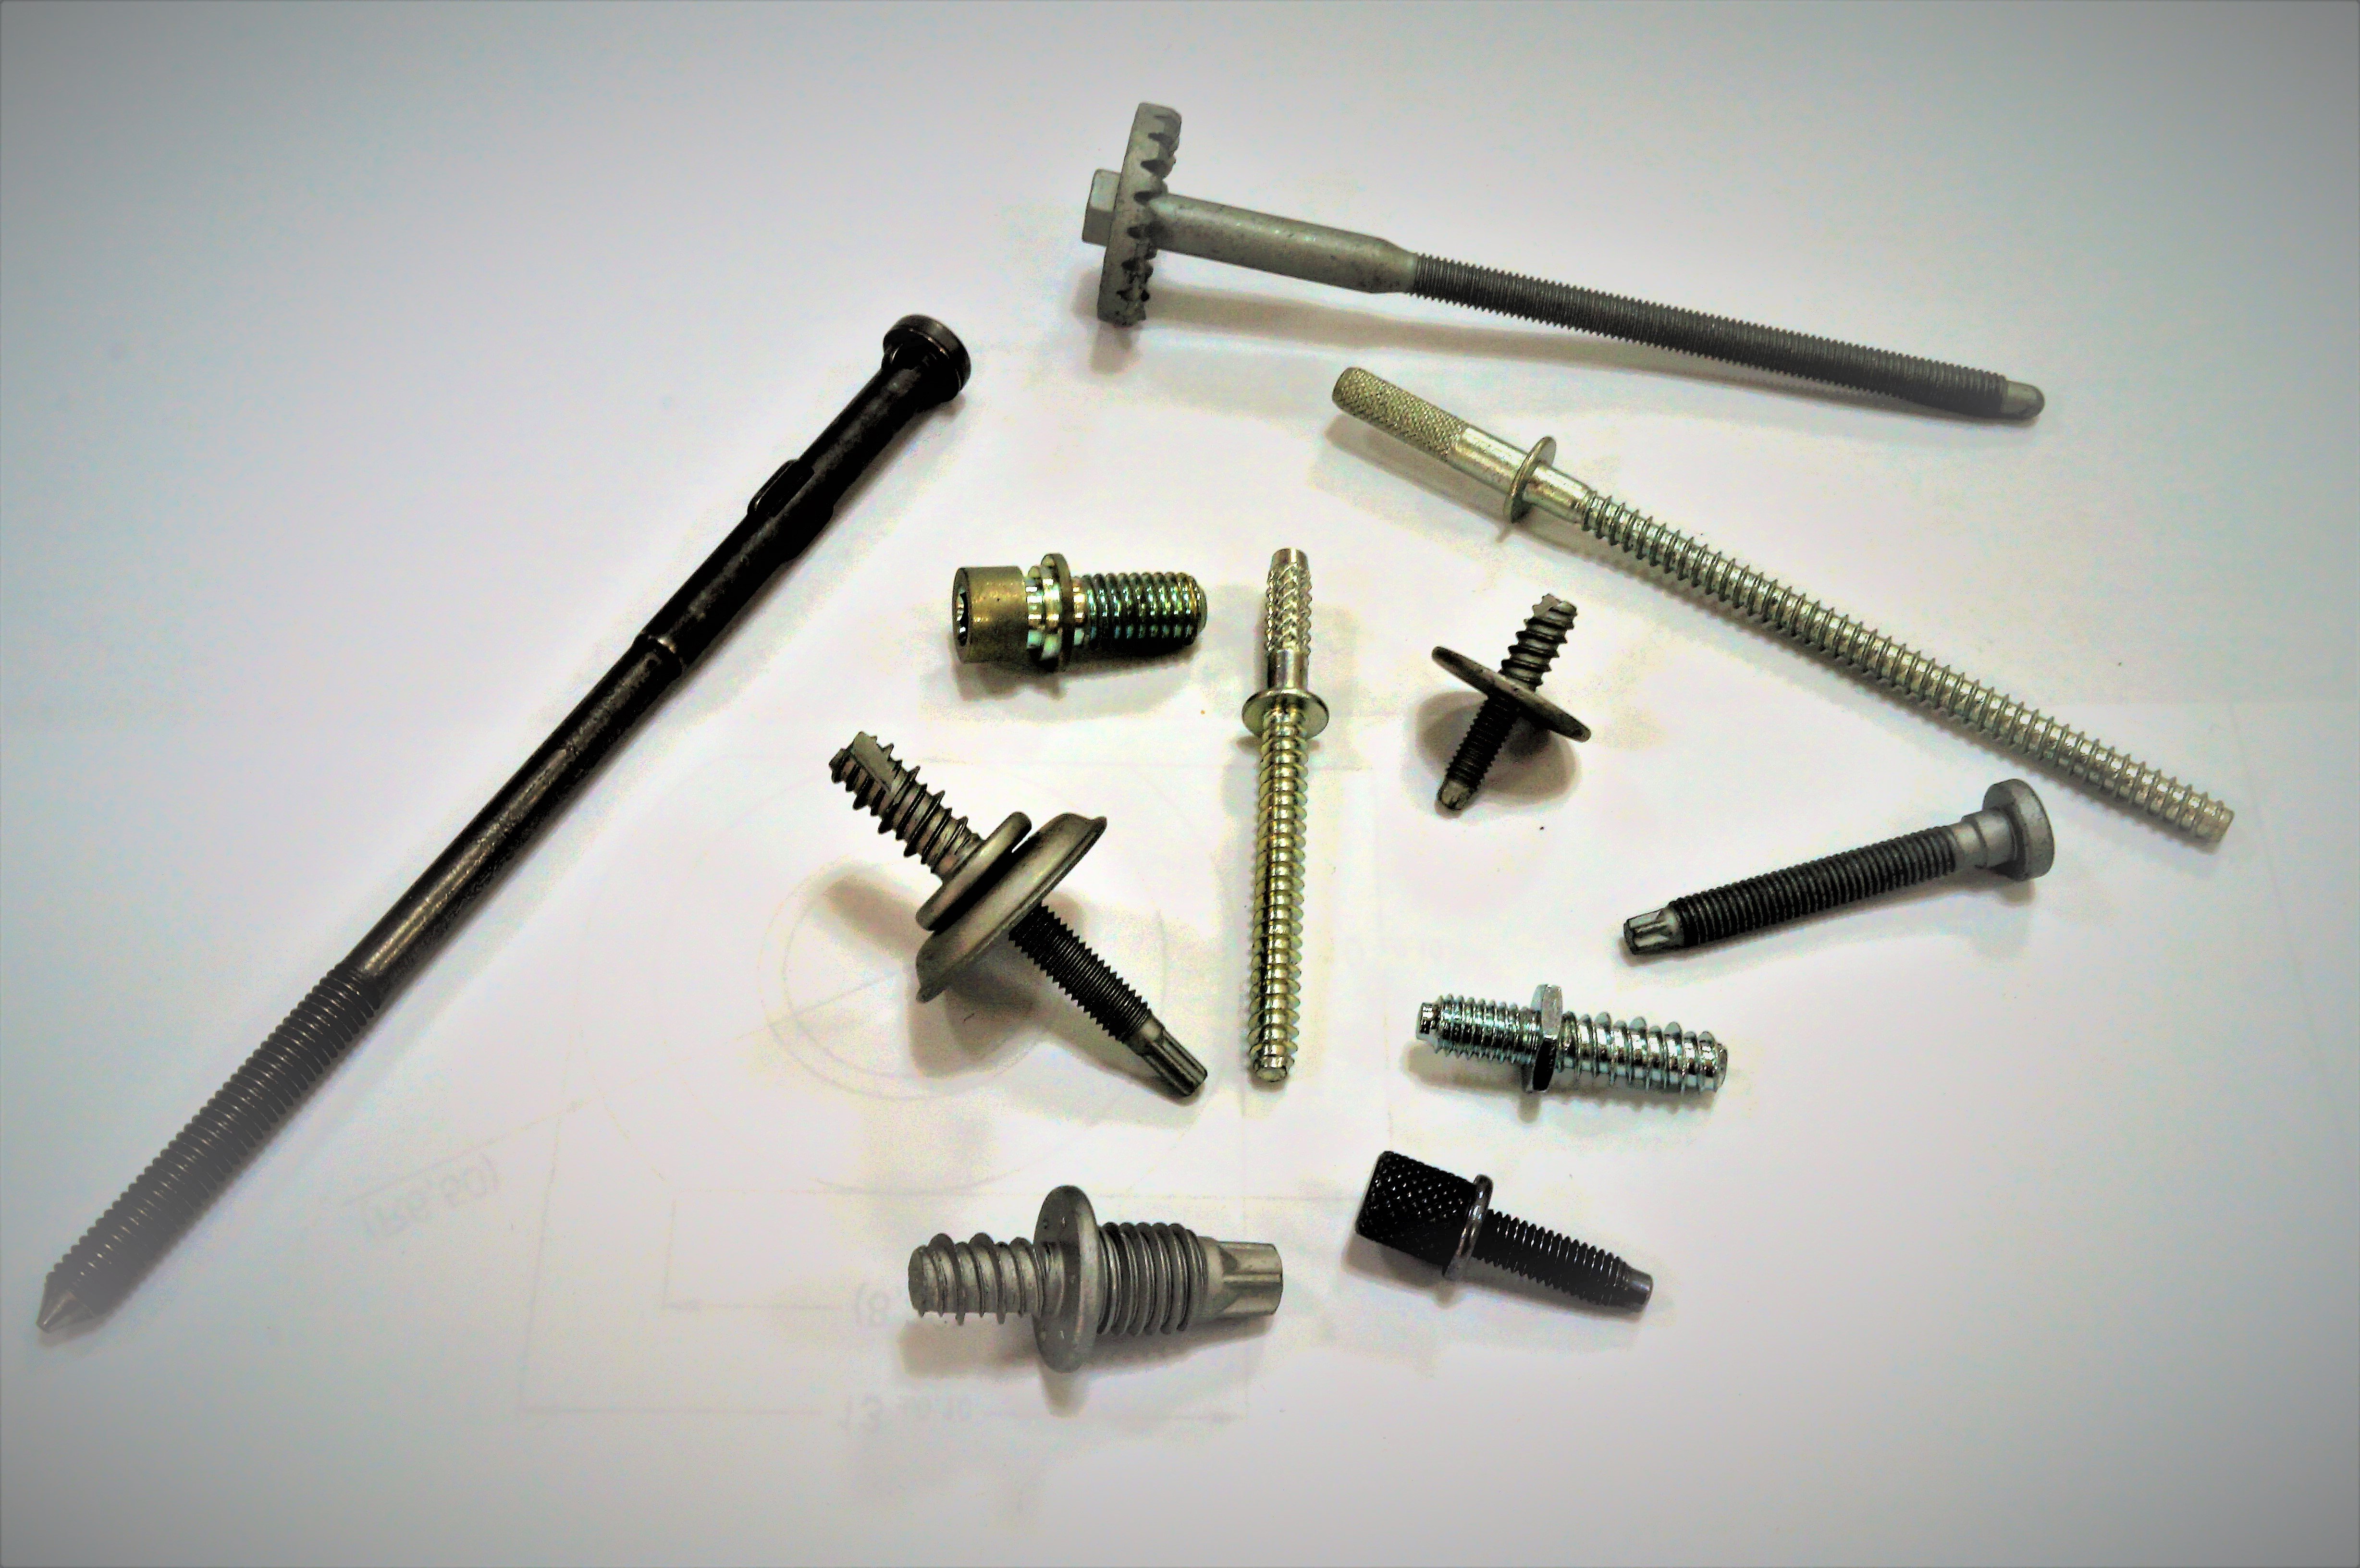 Agricultural / Tractor Double End Screw for Vehicle Fastener made by Sunny Screw Industry 三能螺栓工業股份有限公司 - MatchSupplier.com